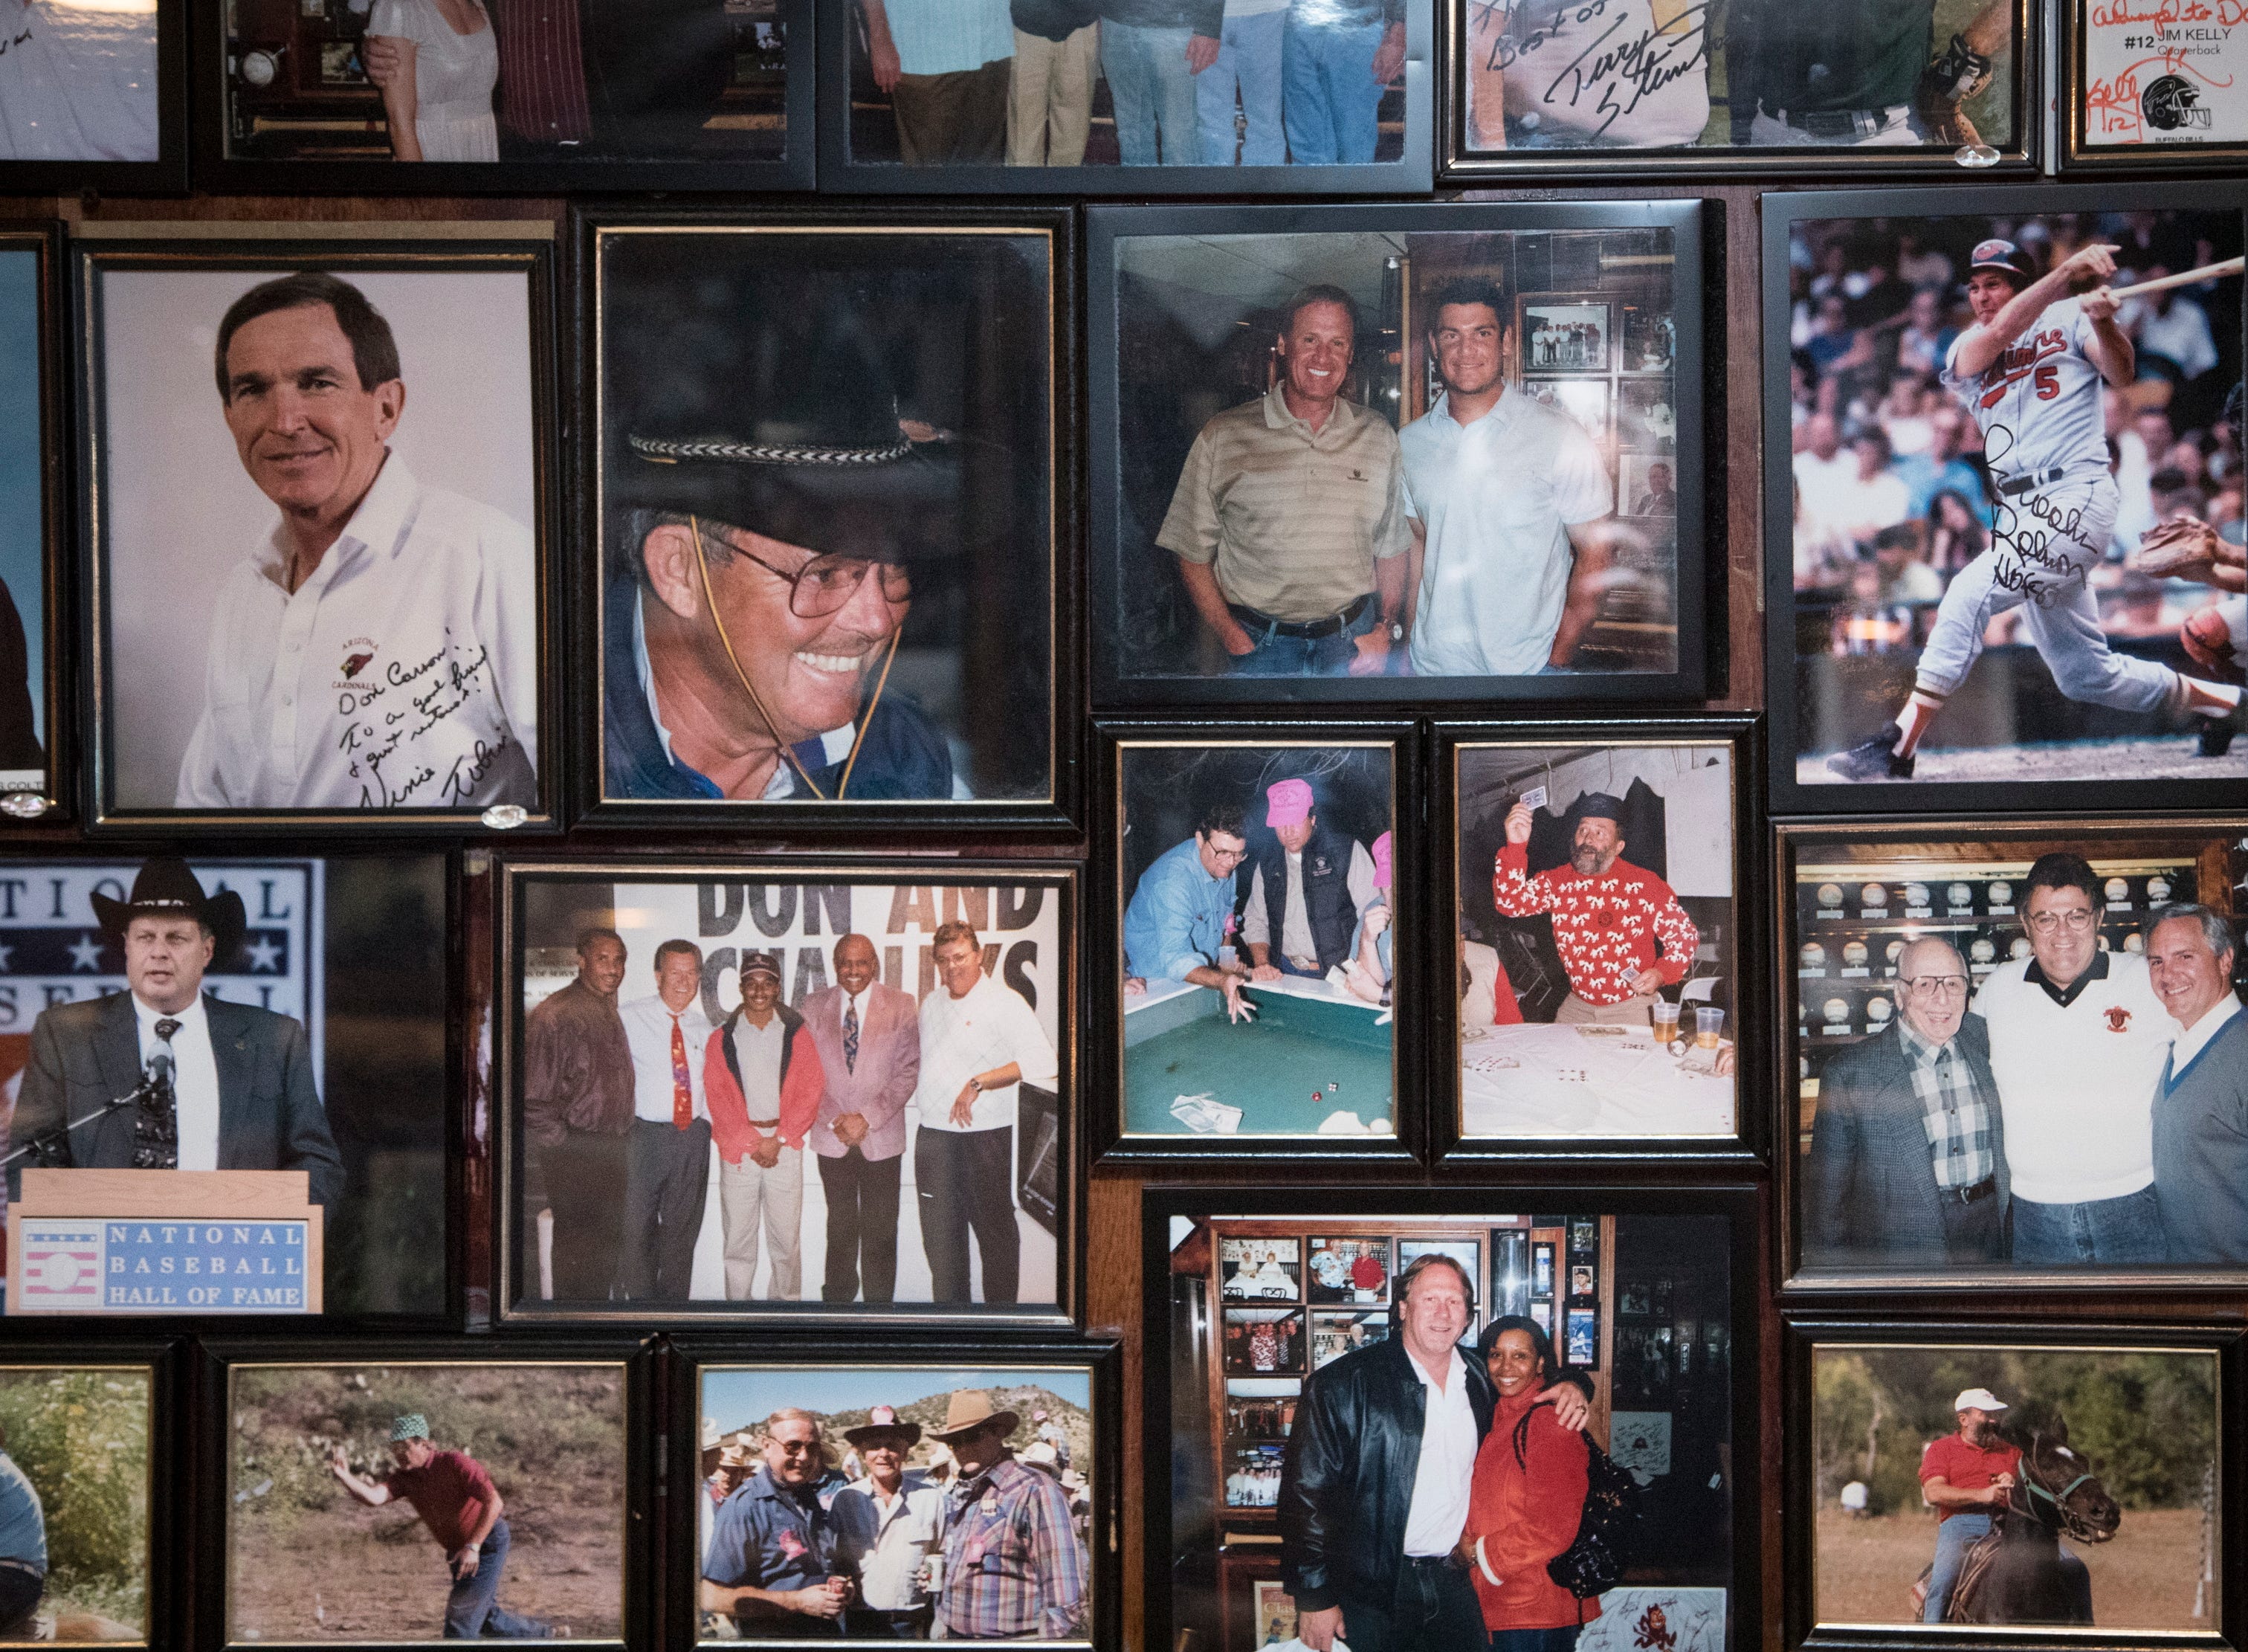 Photos on the wall are seen Feb. 27, 2019, at Don & Charlie's, 7501 E. Camelback Road, Scottsdale.